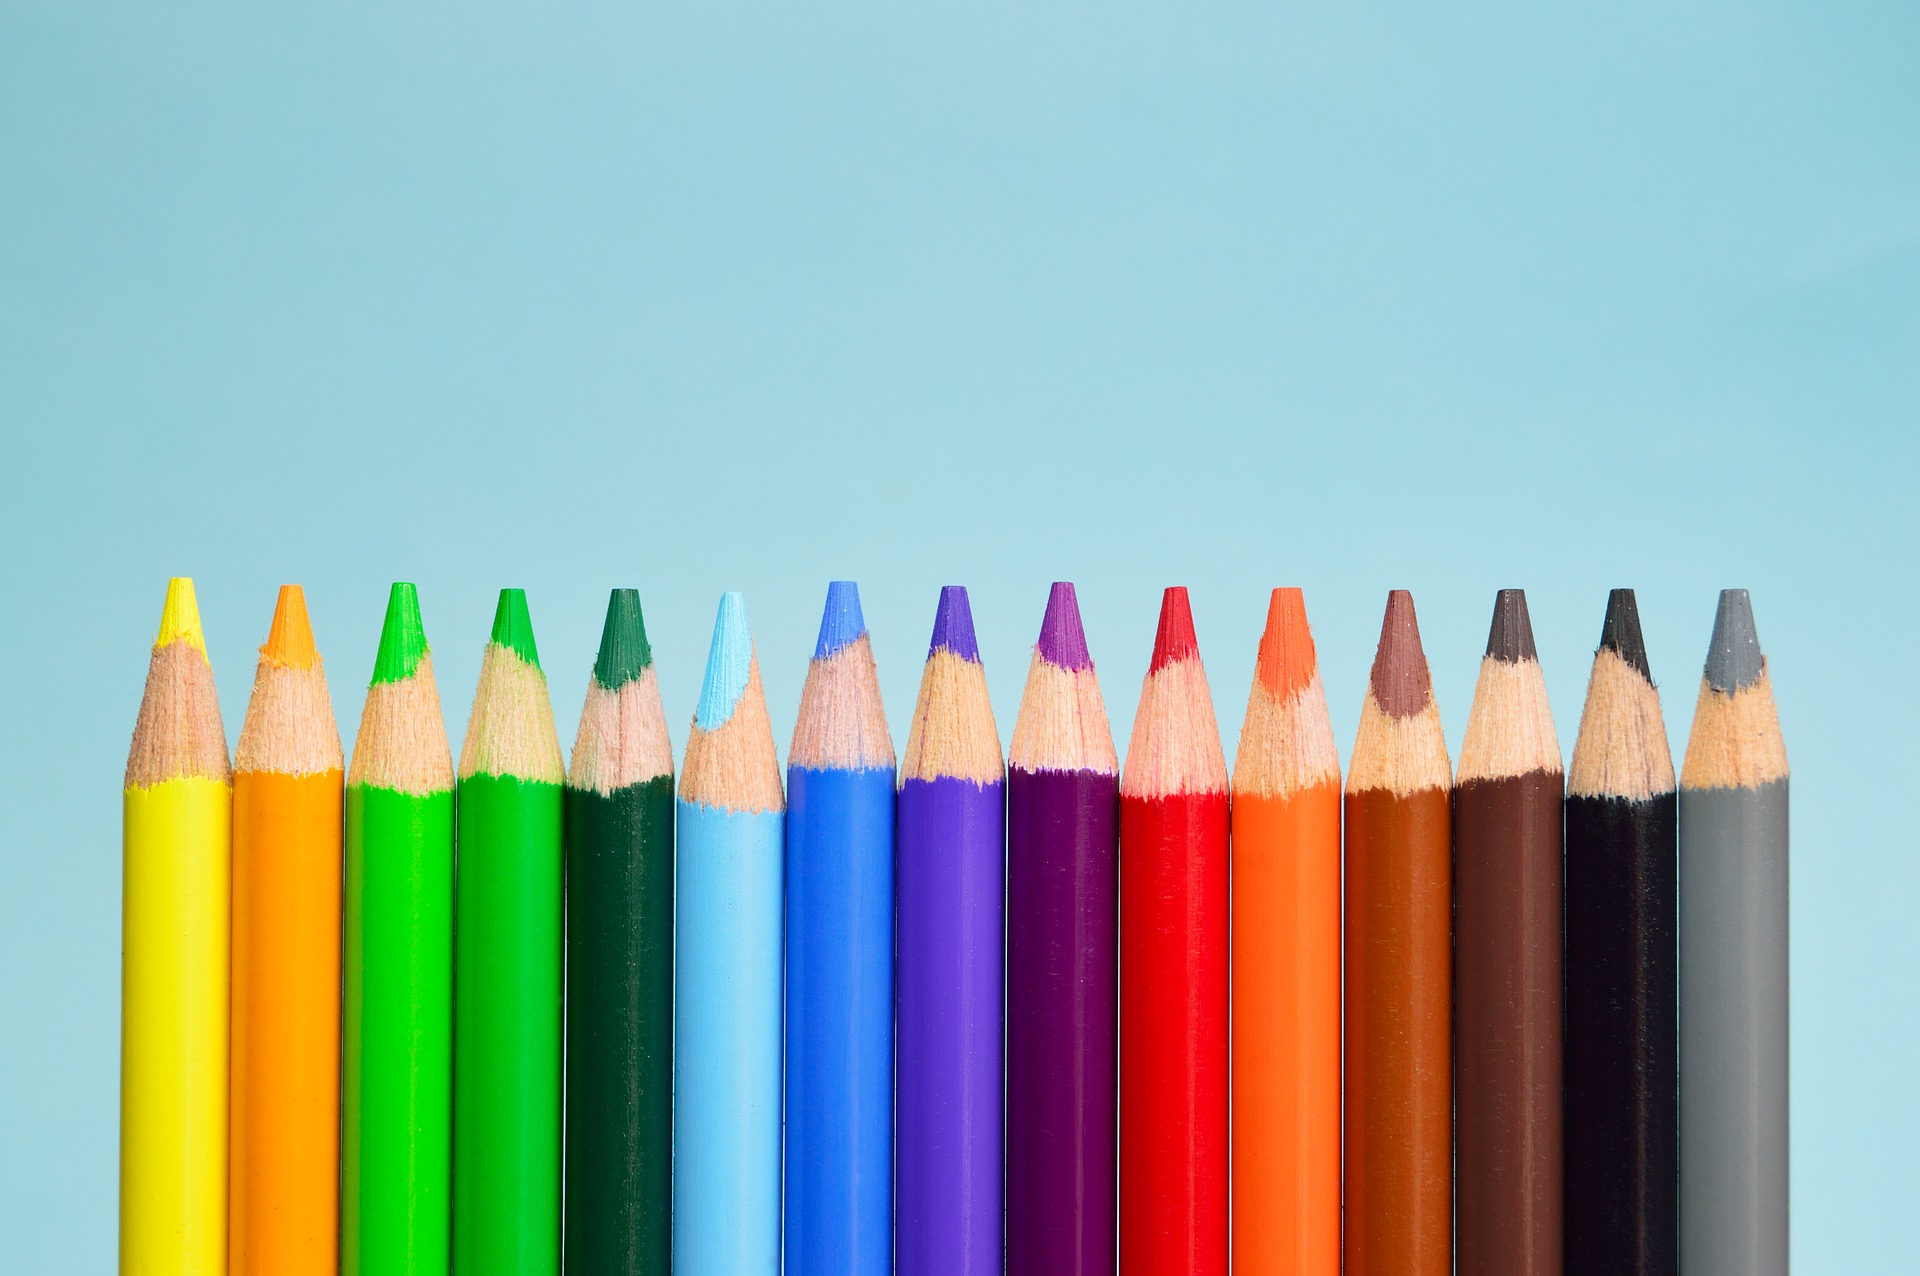 Warm Colors (Energizing) & Color Meanings Explained by a Colorado Branding Agency